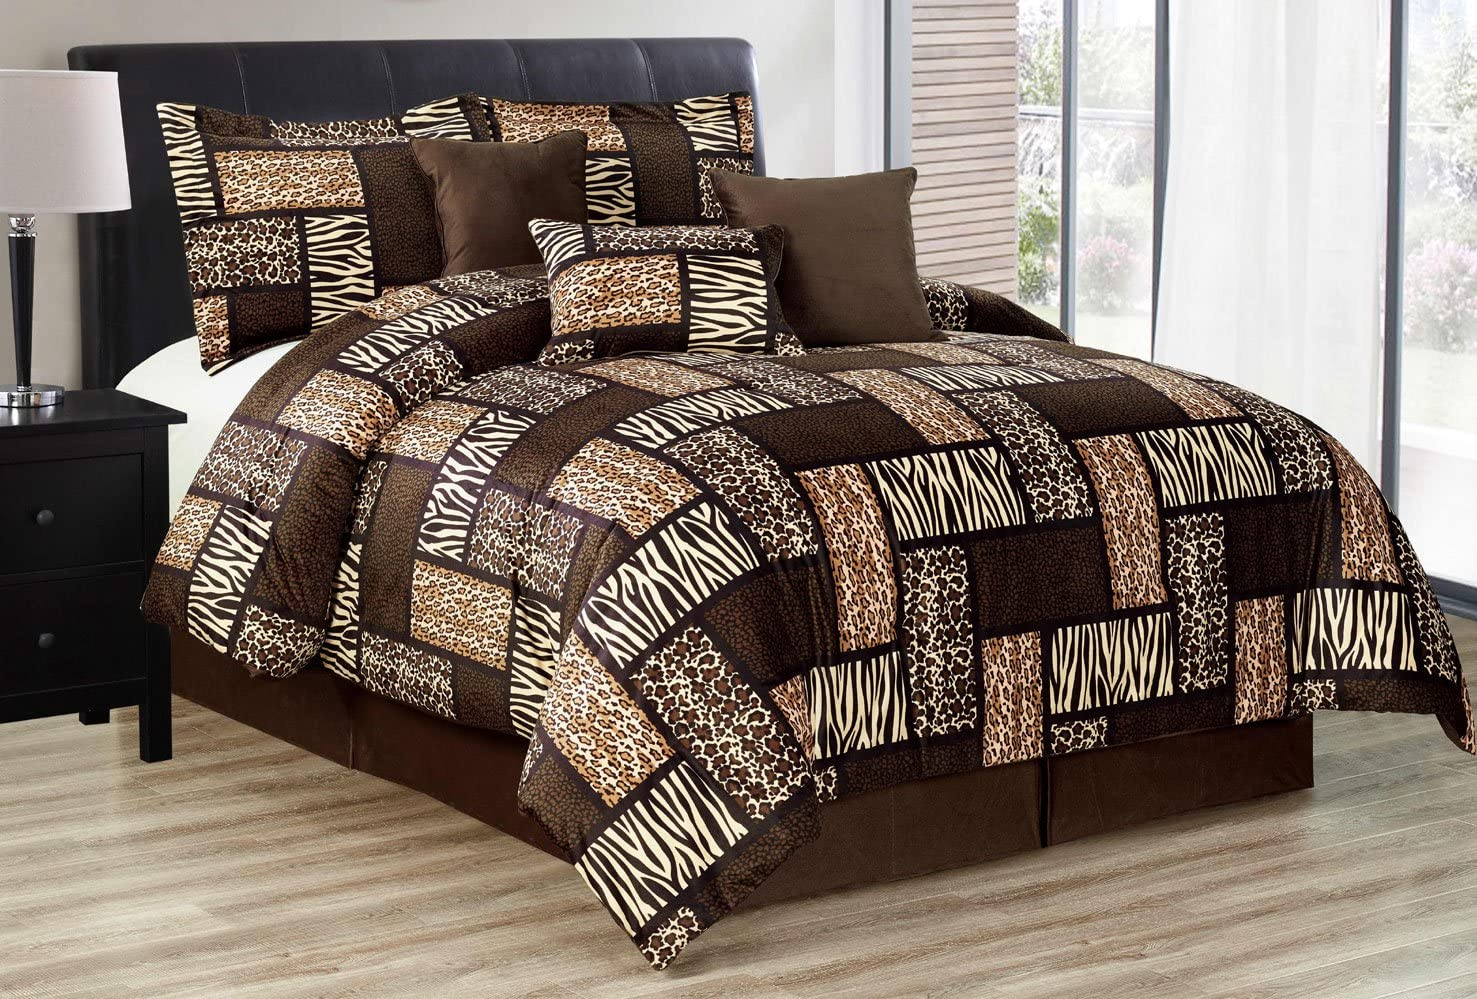 7 Pieces Multi Animal Print Comforter Set Queen Size Bedding Brown, Black, White -Zebra, Leopard, Tiger, Cheetah Etc.